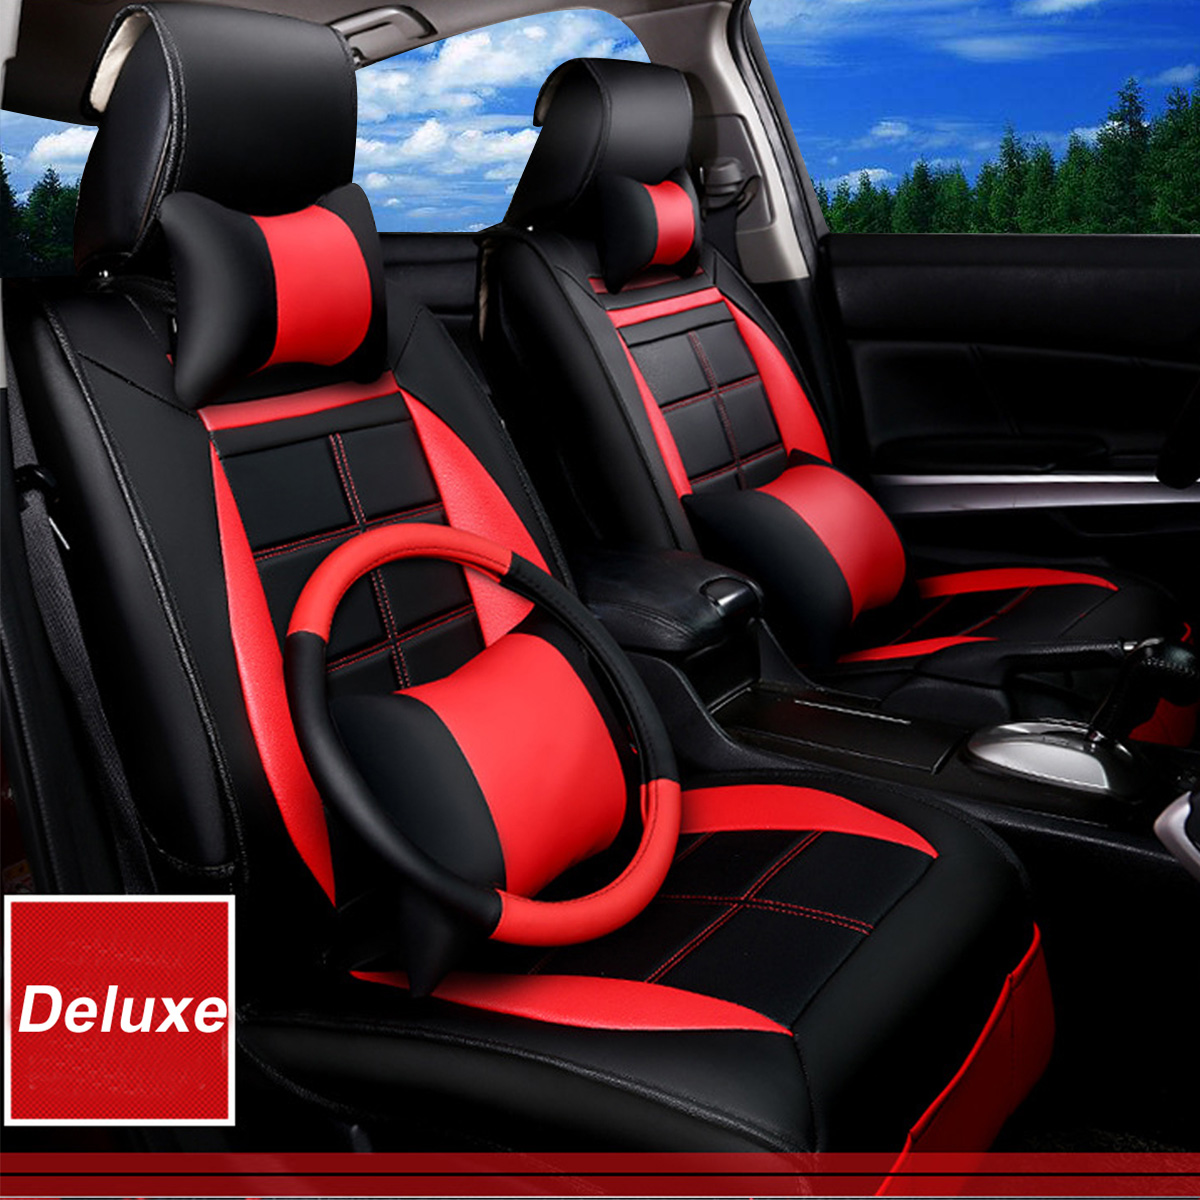 deluxe edition pu leather 5 seats car seat covers front rear cushion pillows us ebay. Black Bedroom Furniture Sets. Home Design Ideas